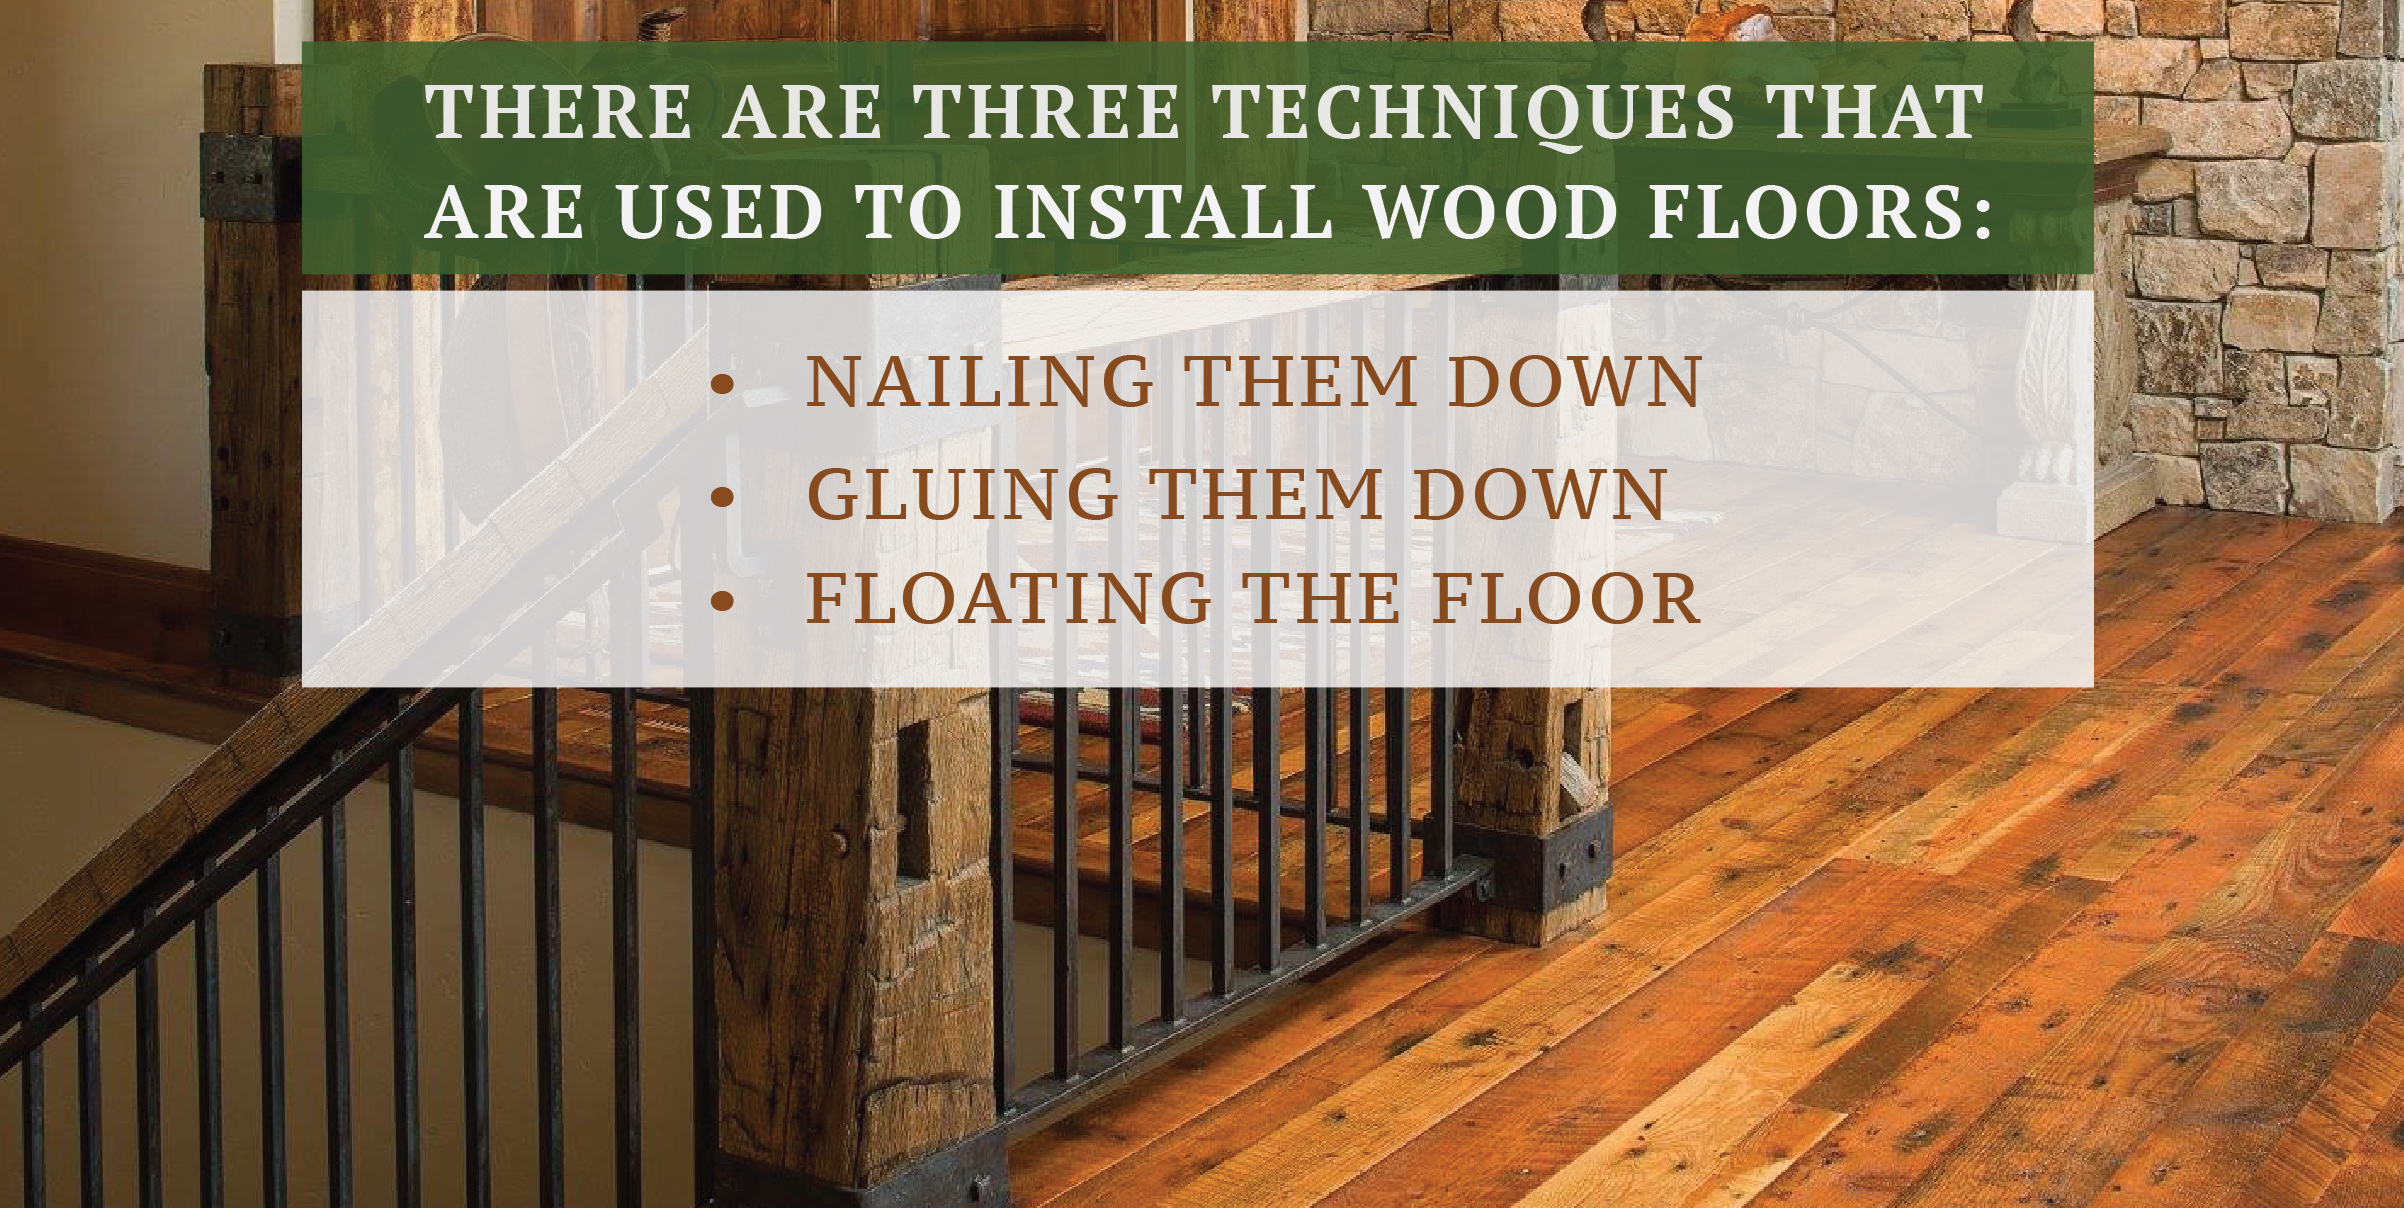 Chapter 6 How To Install Hardwood Floors Lay A Floor Methods Of Installing Wood Flooring